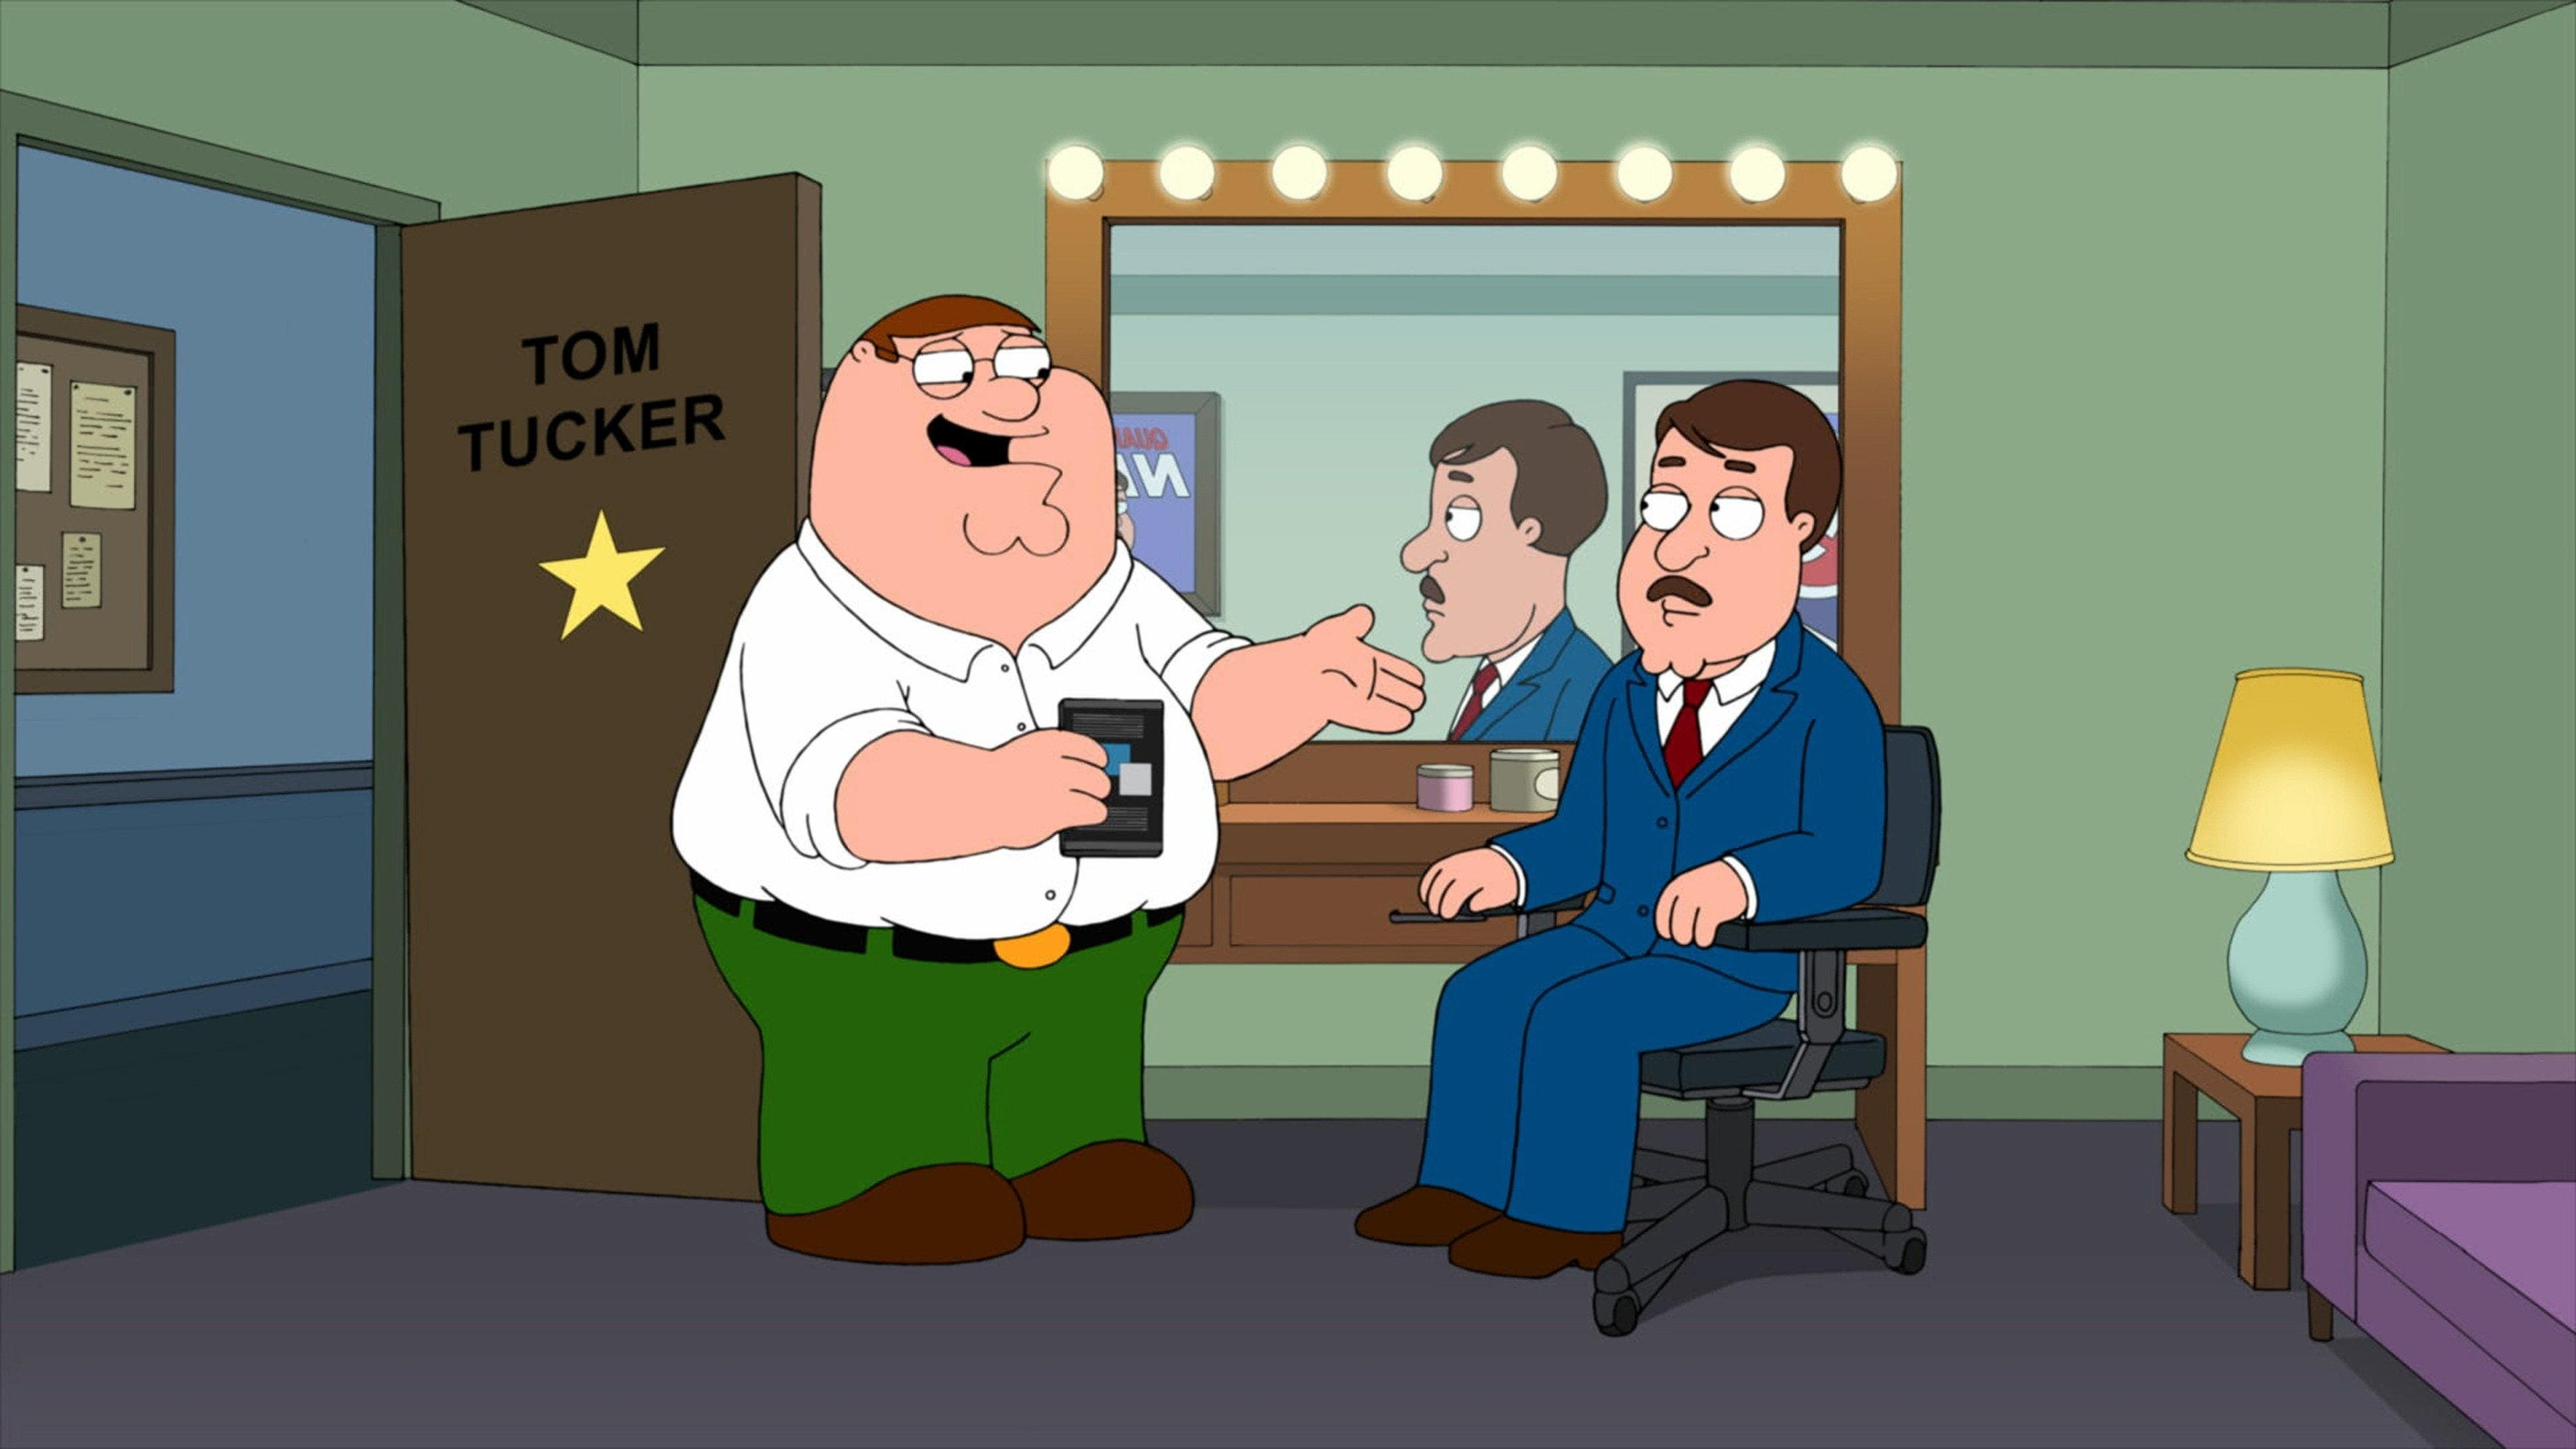 Family Guy - Season 10 Episode 13 : Tom Tucker: The Man and His Dream